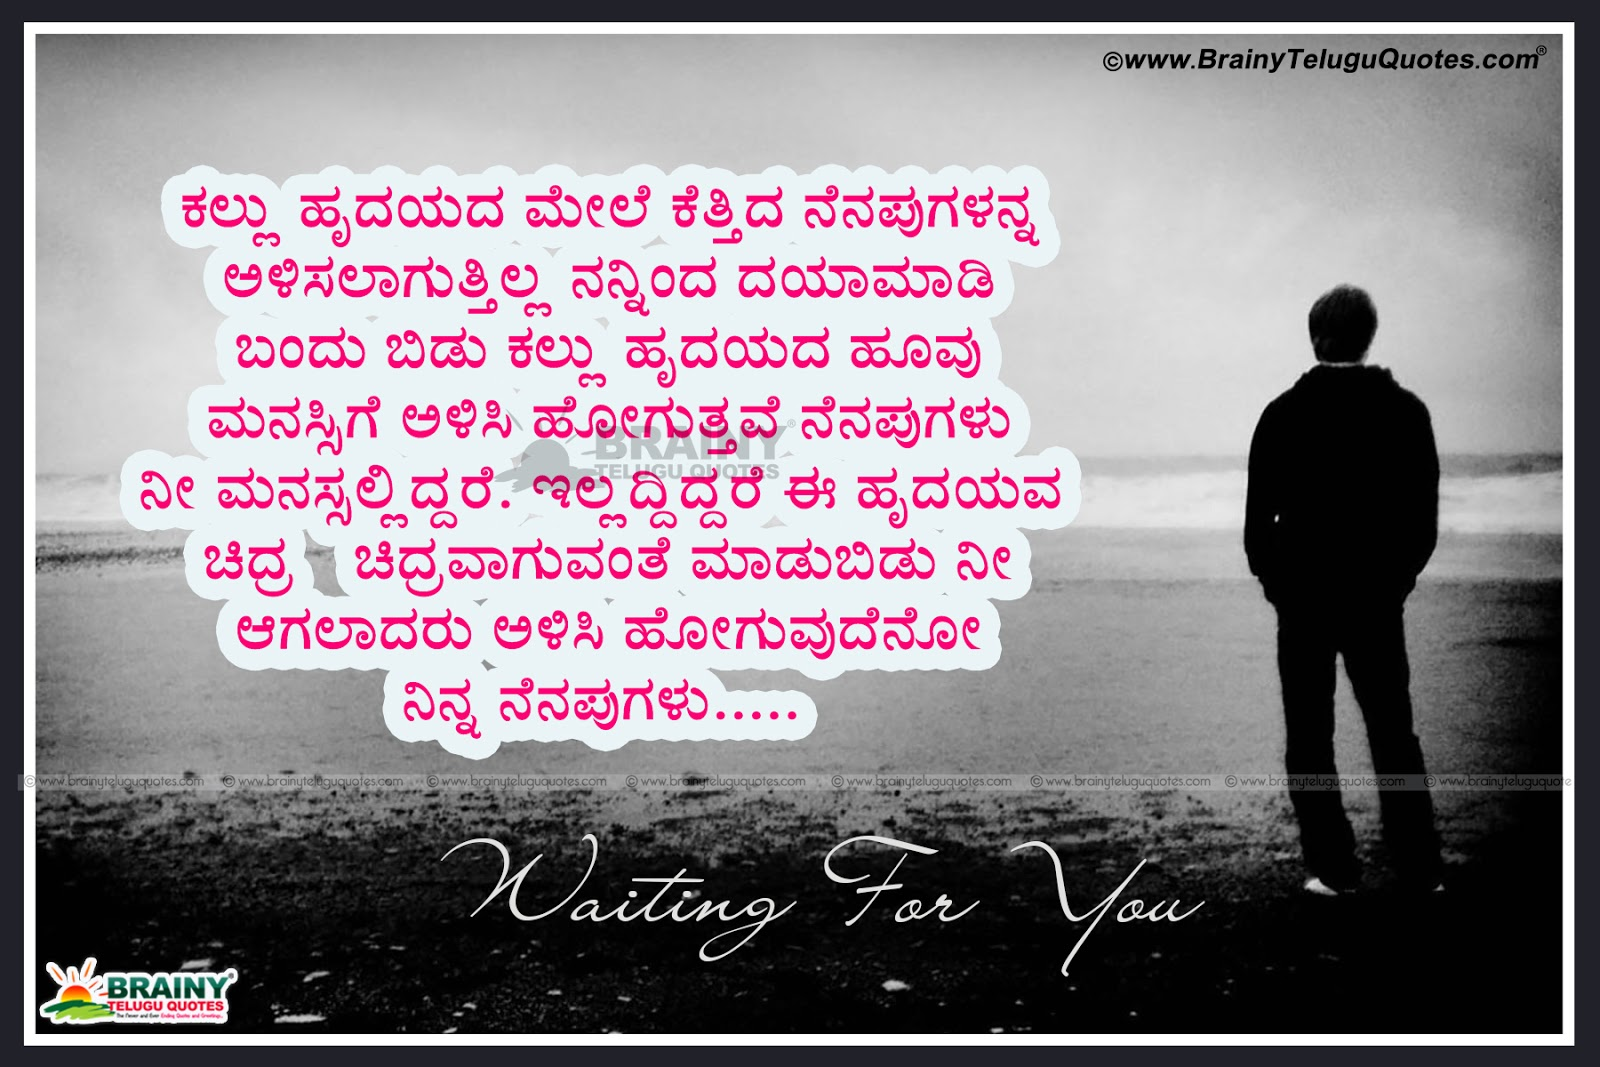 Sad Feeling Kannada Images: Top Kannada I Miss You Quotes Kavanagalu Messages With